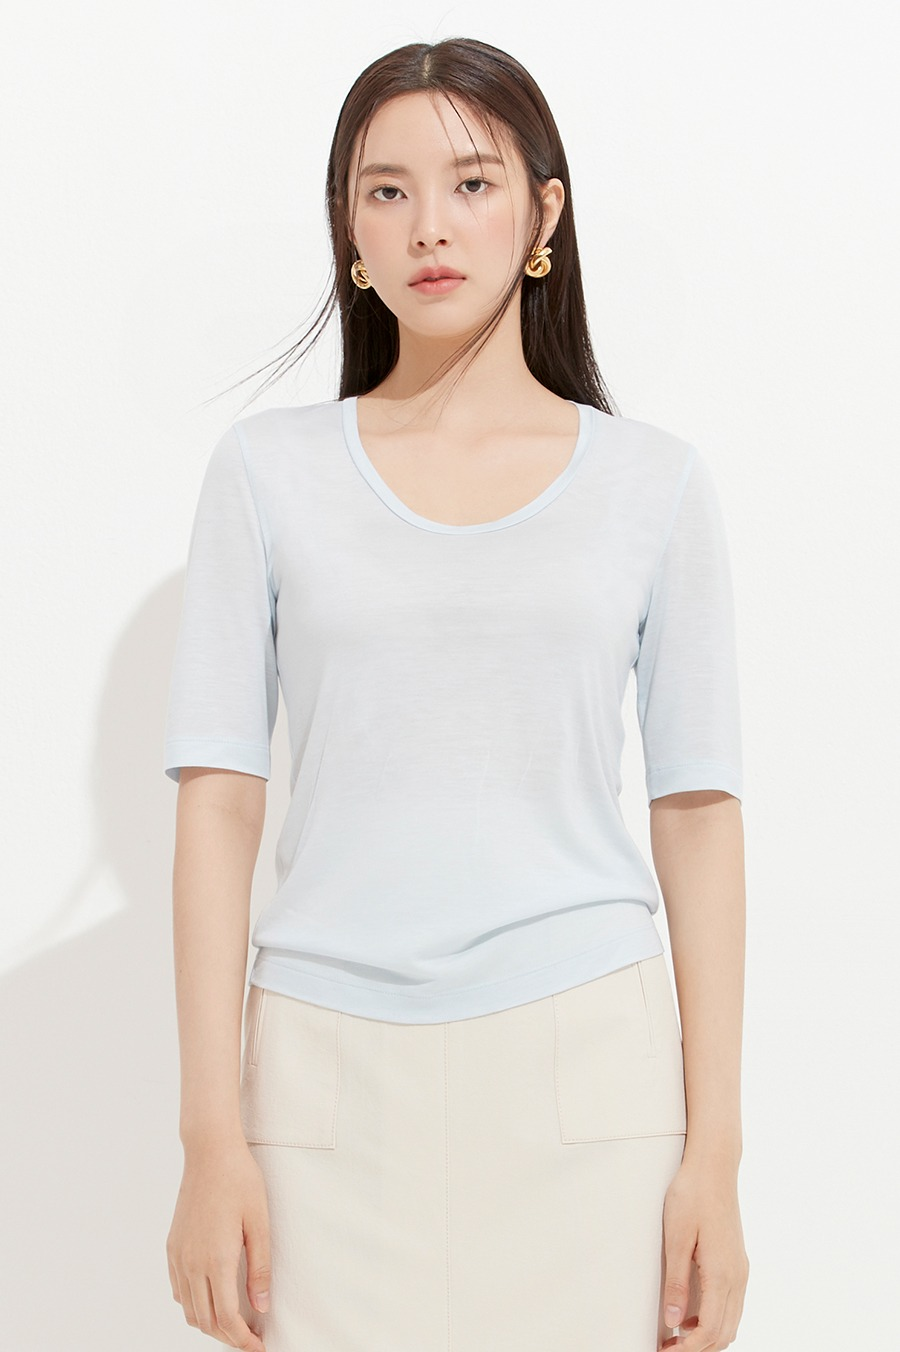 NO.11 TOP - 4 COLORS PACK (20% OFF PRICE)